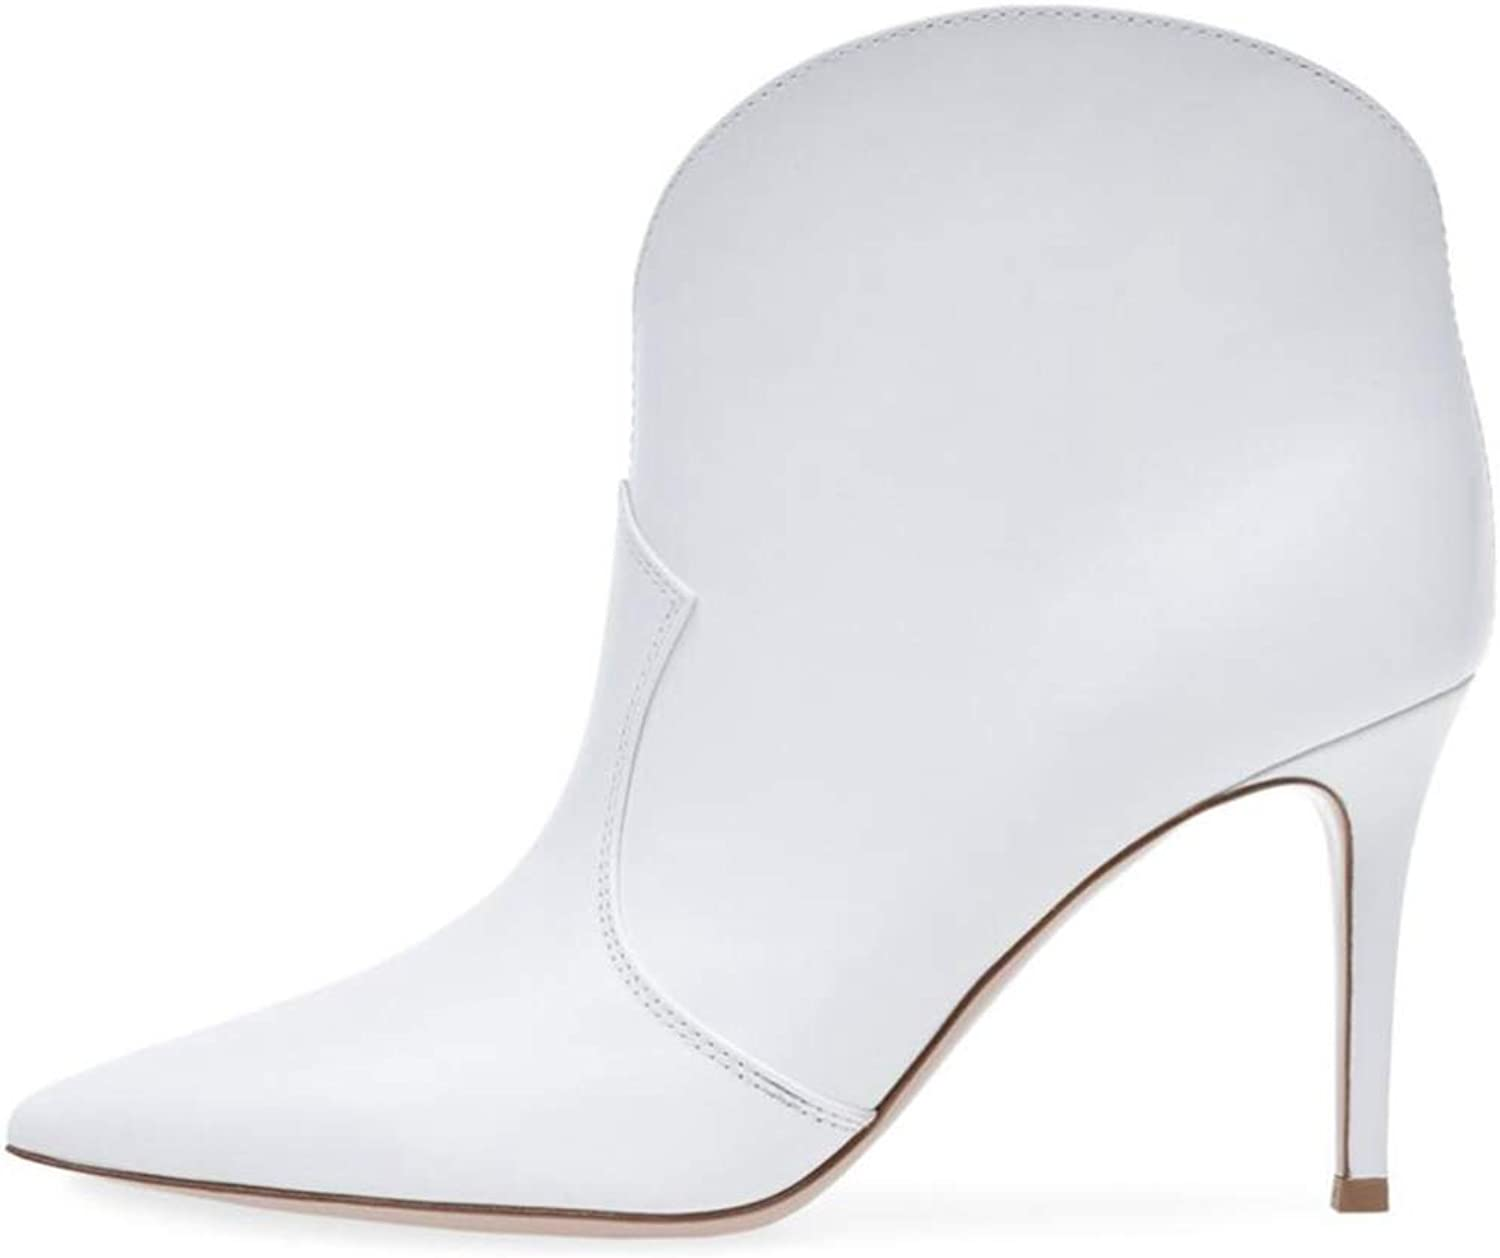 Shiney Women's Ankle Boots Pointed Toe Stiletto Heels Large Size High Heel White Artificial PU